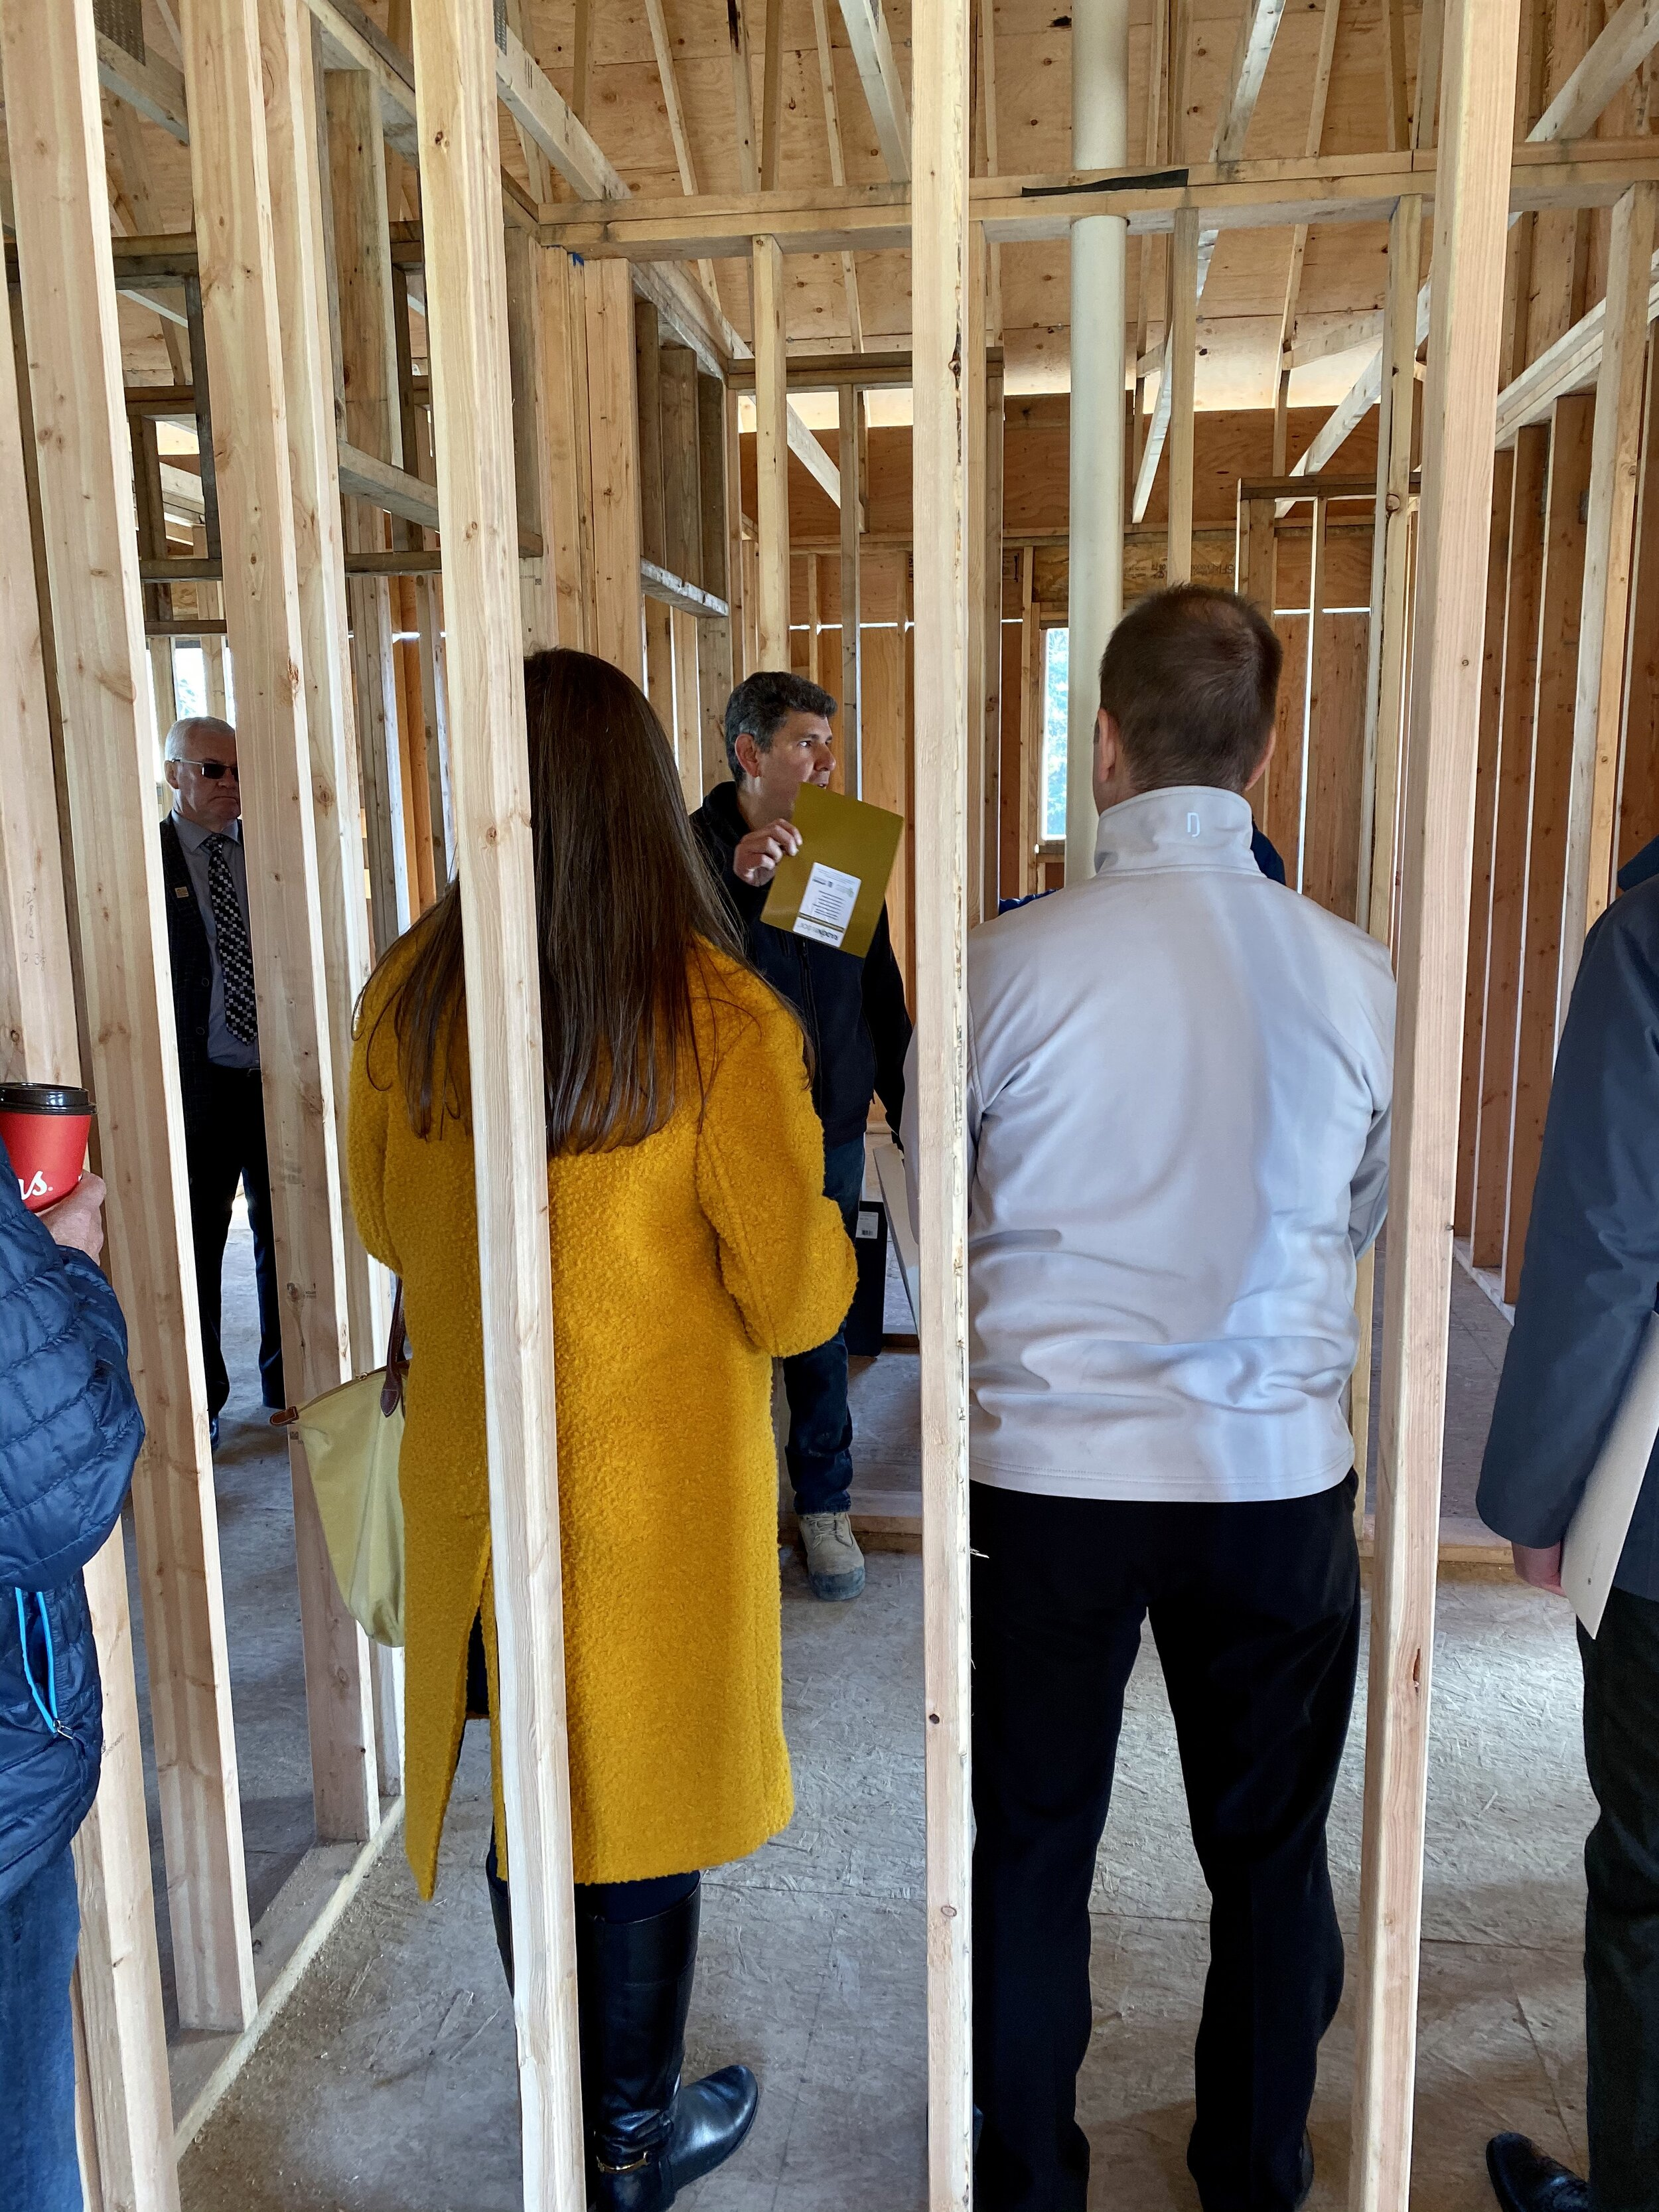 """Johnathan describing the use of Radon Block, a high-performance gas and vapour barrier membrane engineered to block radon and methane. He also describes using the Radon Guard and Block together as a high-performance system to """"Build it Right."""""""